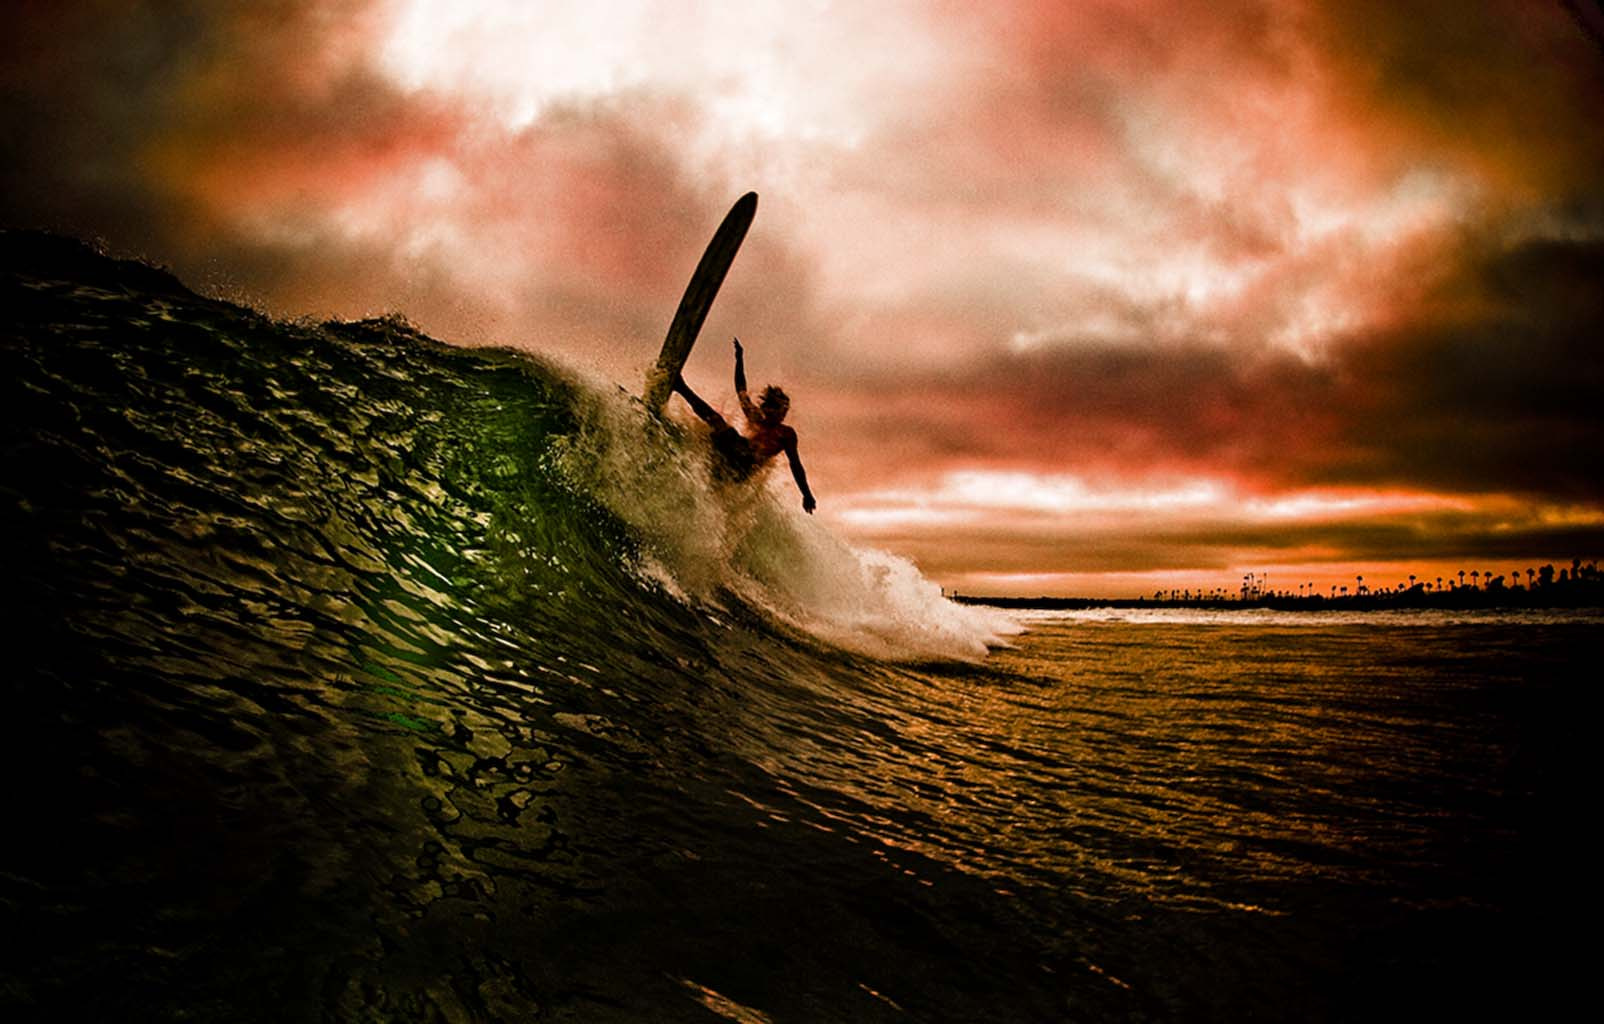 Photograph Aggressive longboarding during a storm. by Jeff Farsai on 500px